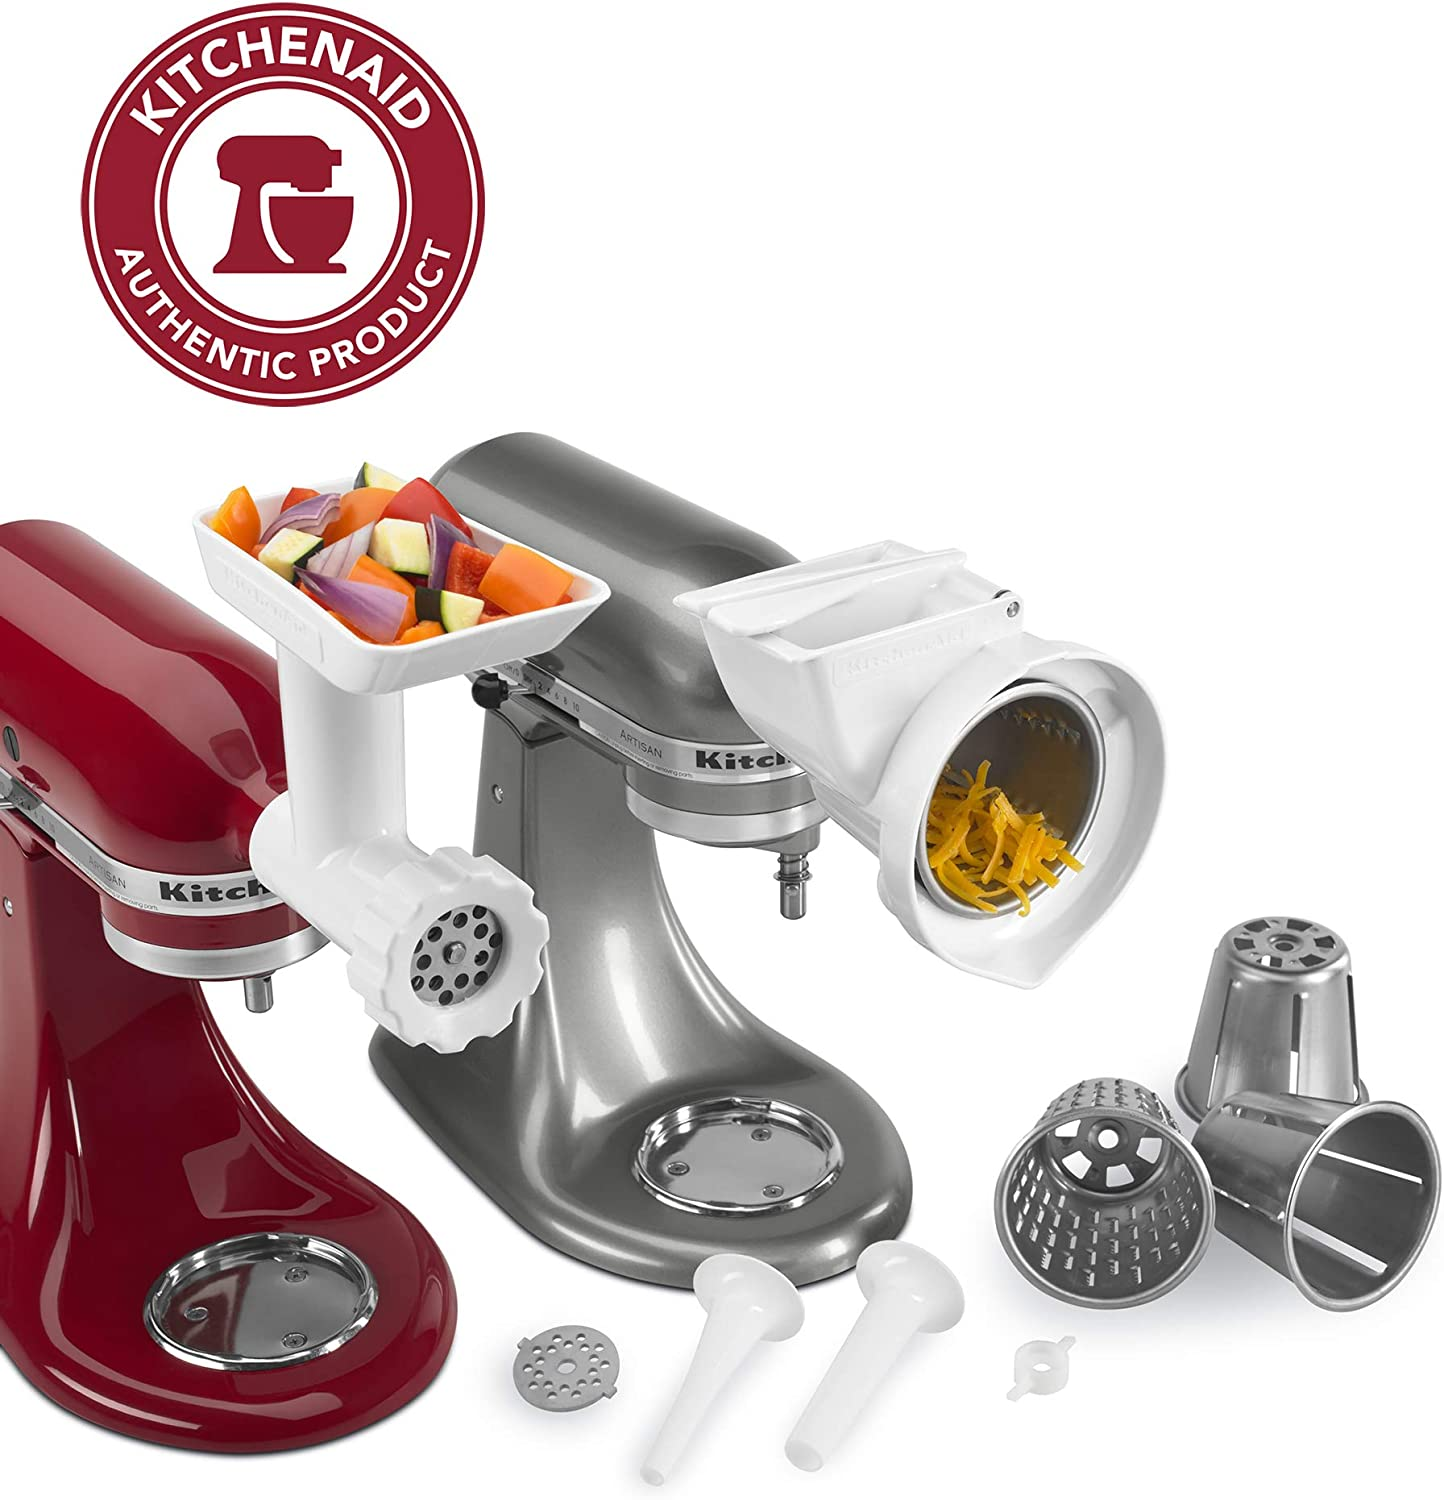 KitchenAid 80127 KGSSA Stand Mixer Attachment with Food Grinder, Rotor Slicer, Shredder and Sausage Stuffer